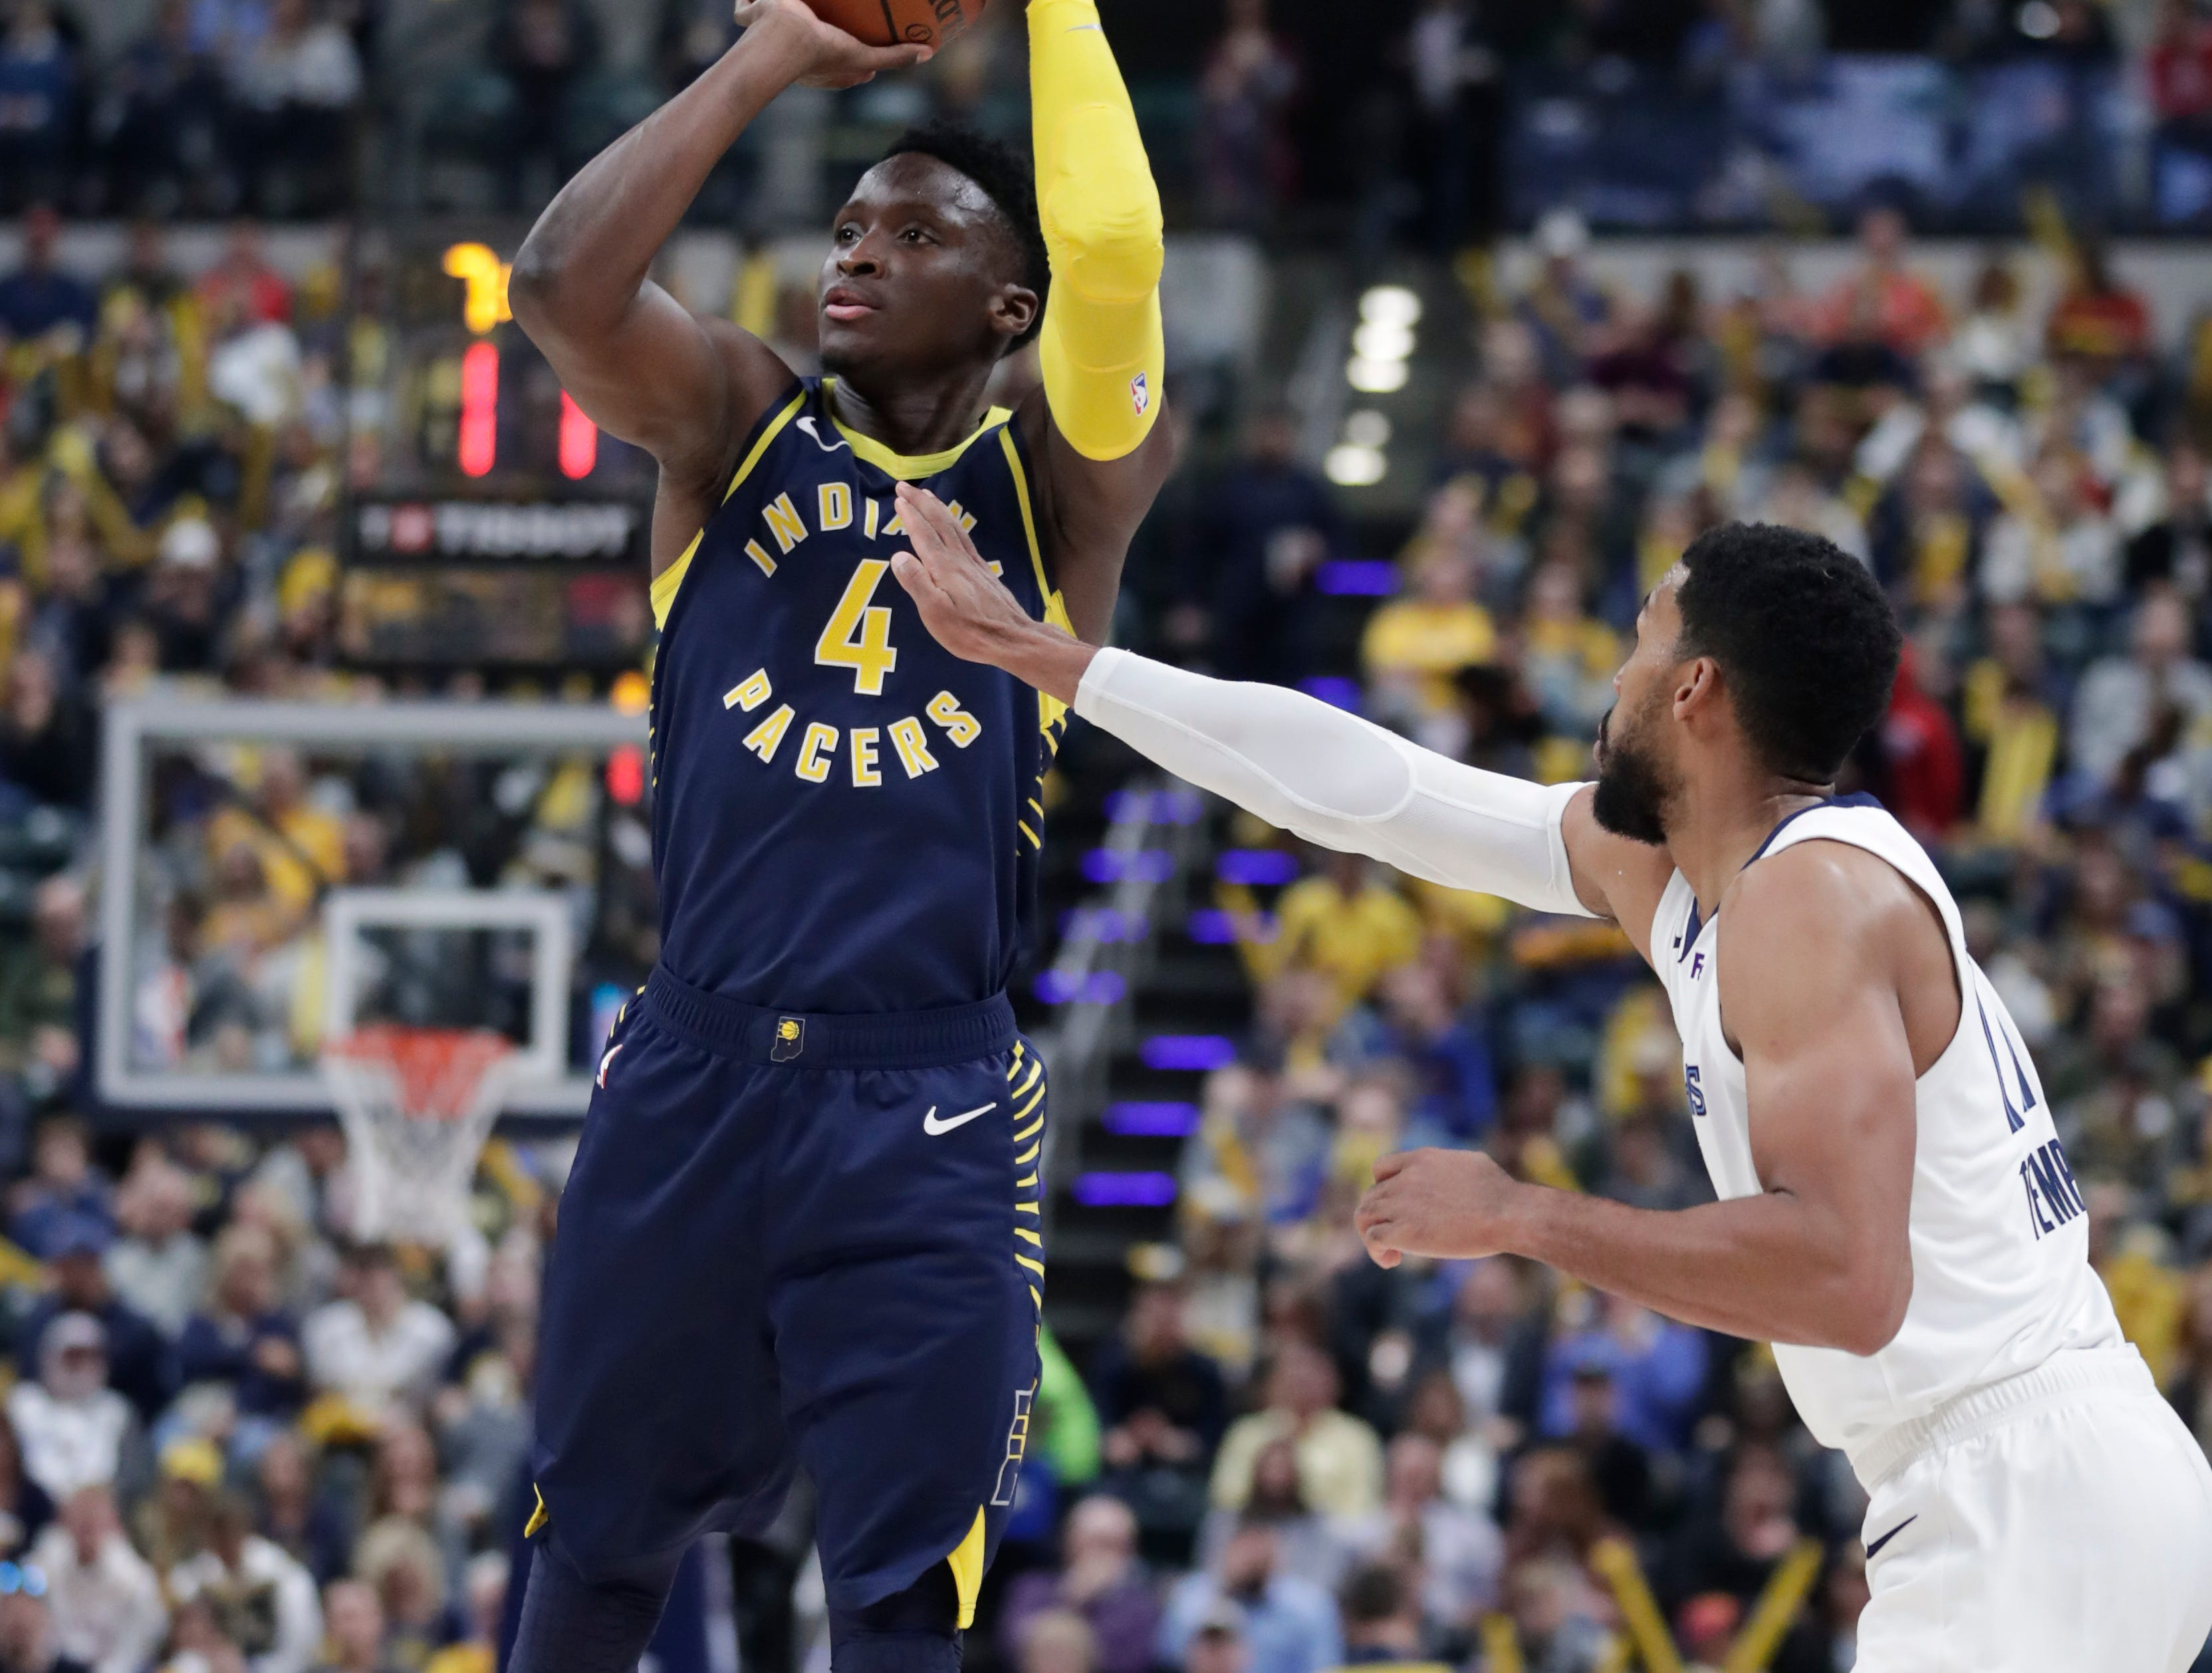 Indiana Pacers guard Victor Oladipo (4) shoots over Memphis Grizzlies guard Garrett Temple (17) during the second half of an NBA basketball game in Indianapolis, Wednesday, Oct. 17, 2018. The Pacers defeated the Grizzlies 111-83.